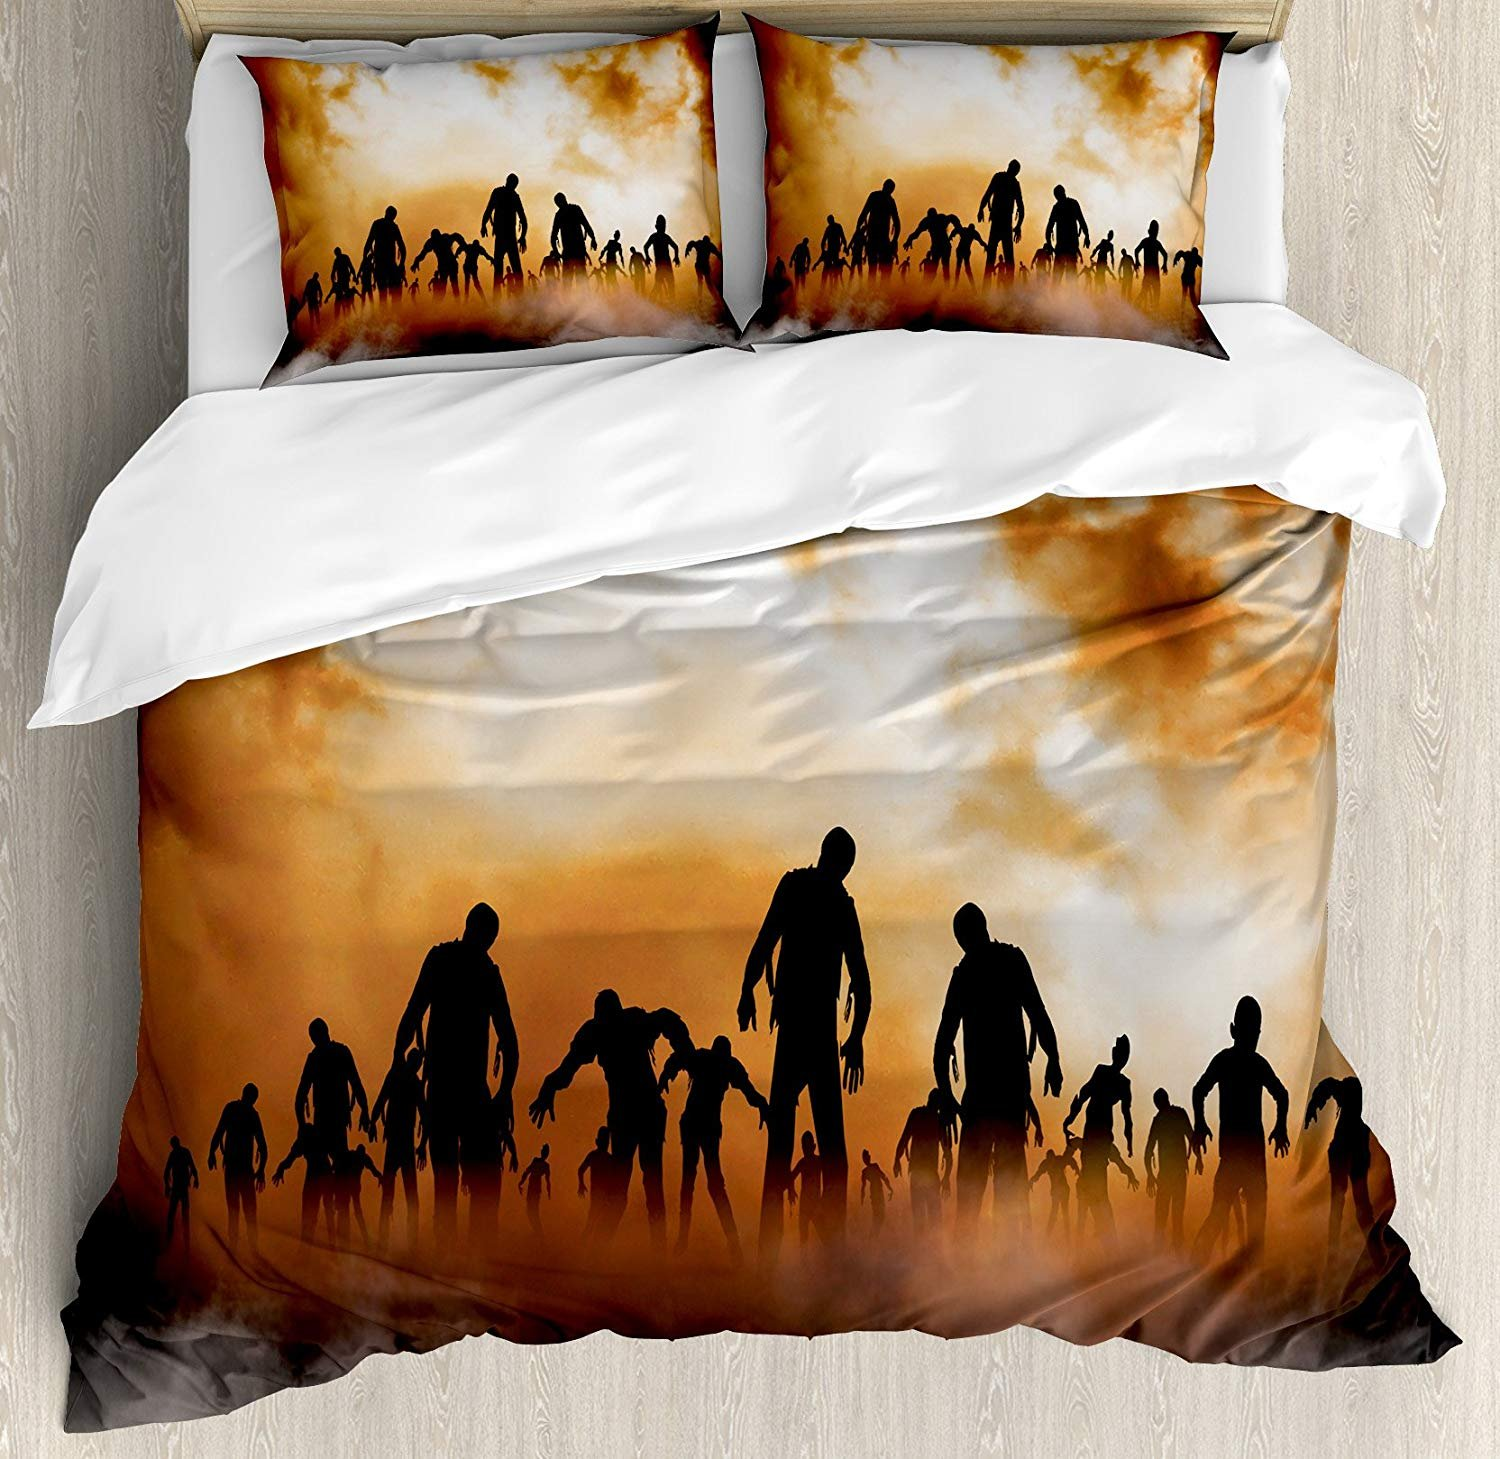 Halloween Luxury Duvet Cover Set Soft Bedding Sets Full Size - with Flat Sheet Comforter Protector and Pillow Shams - Zombies Dead Men Walking Body in The Doom Mist at Night Sky Haunted Theme Print